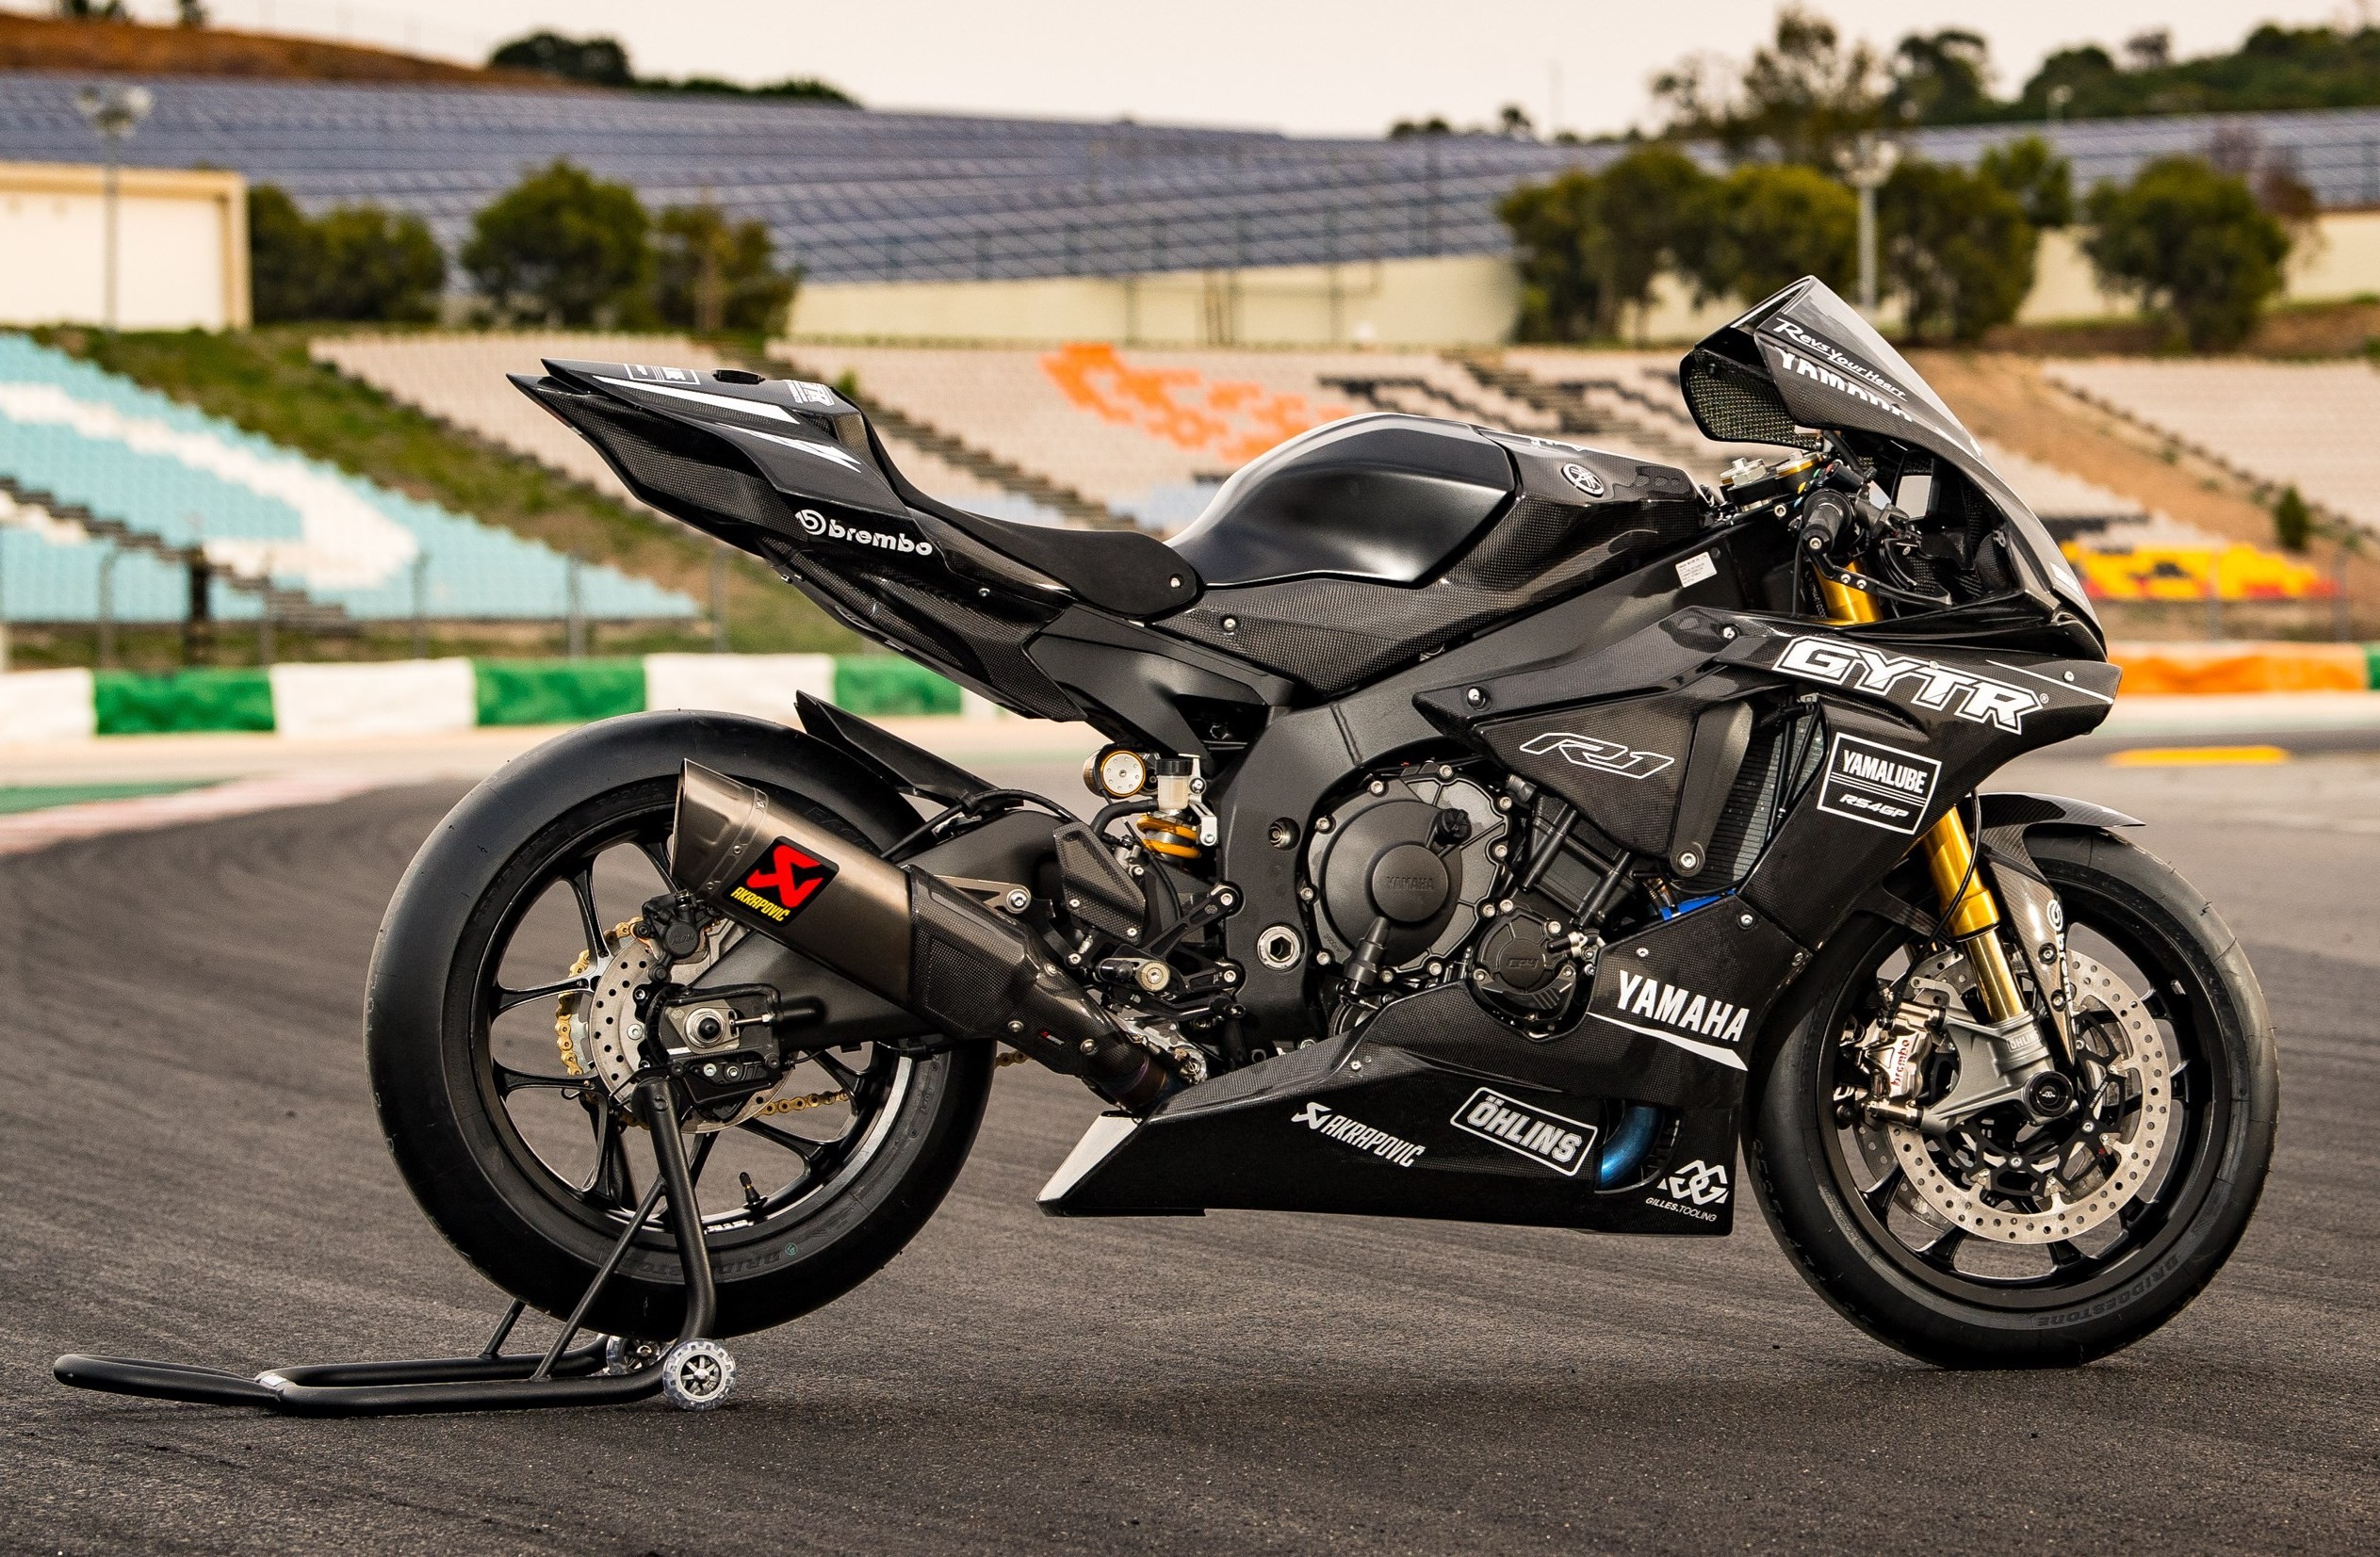 Speed and aesthetics with the yamaha r1 carbon fiber